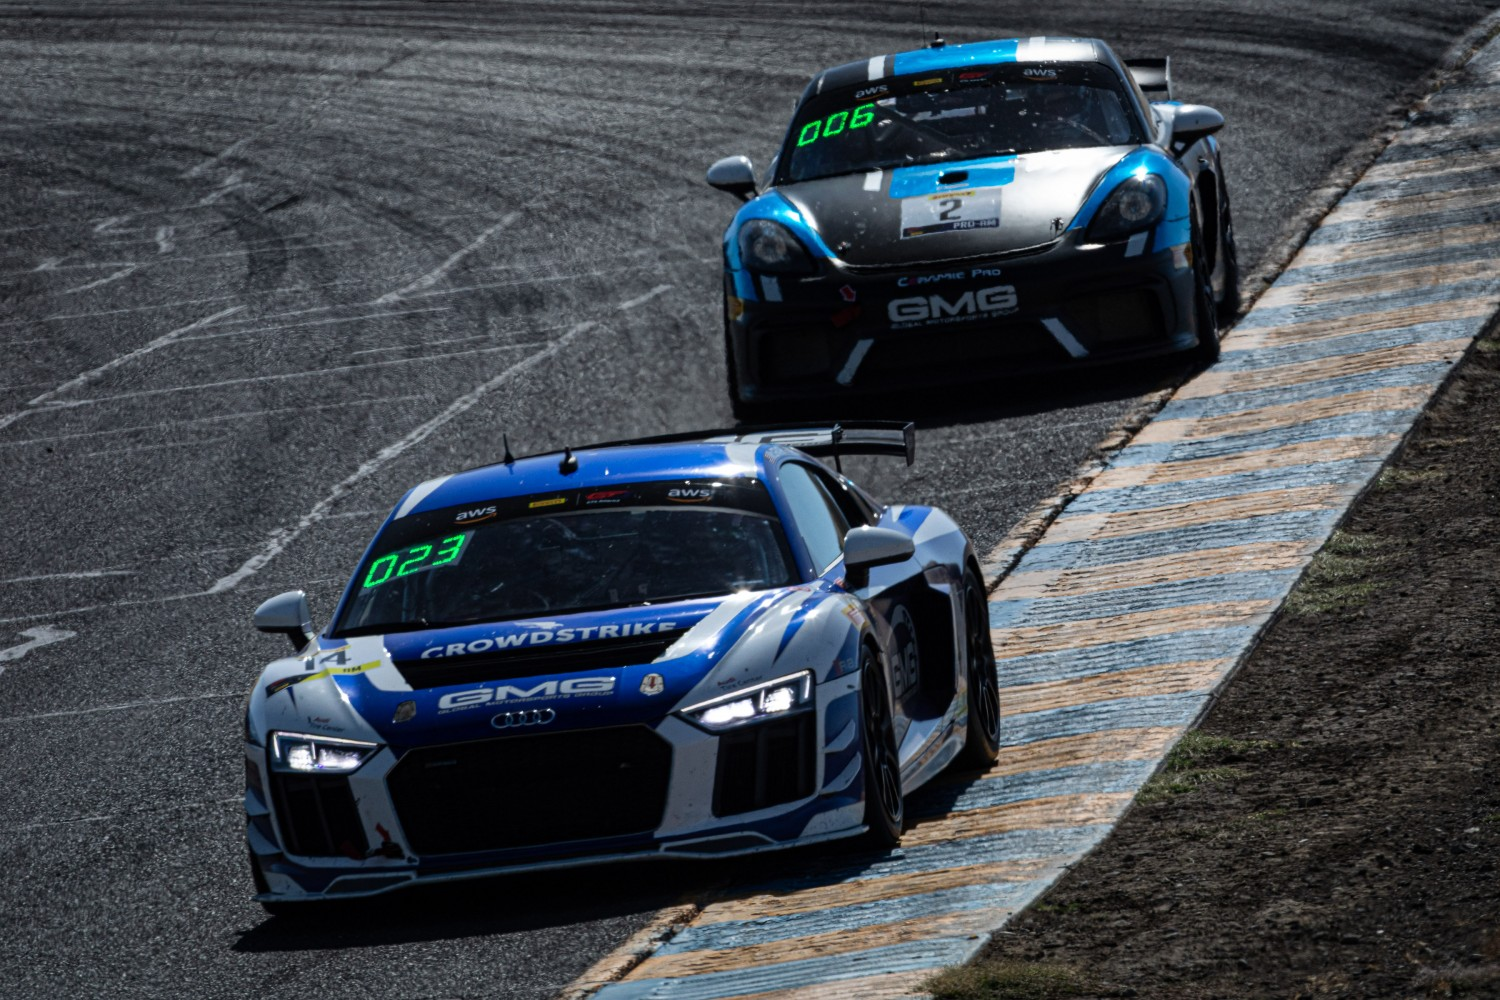 #14 Audi R8 LMS GT4 of Alex Welch and Michael McGrath, GMG Racing, GT4 SprintX, 2020 SRO Motorsports Group - Sonoma Raceway, Sonoma CA  | Brian Cleary